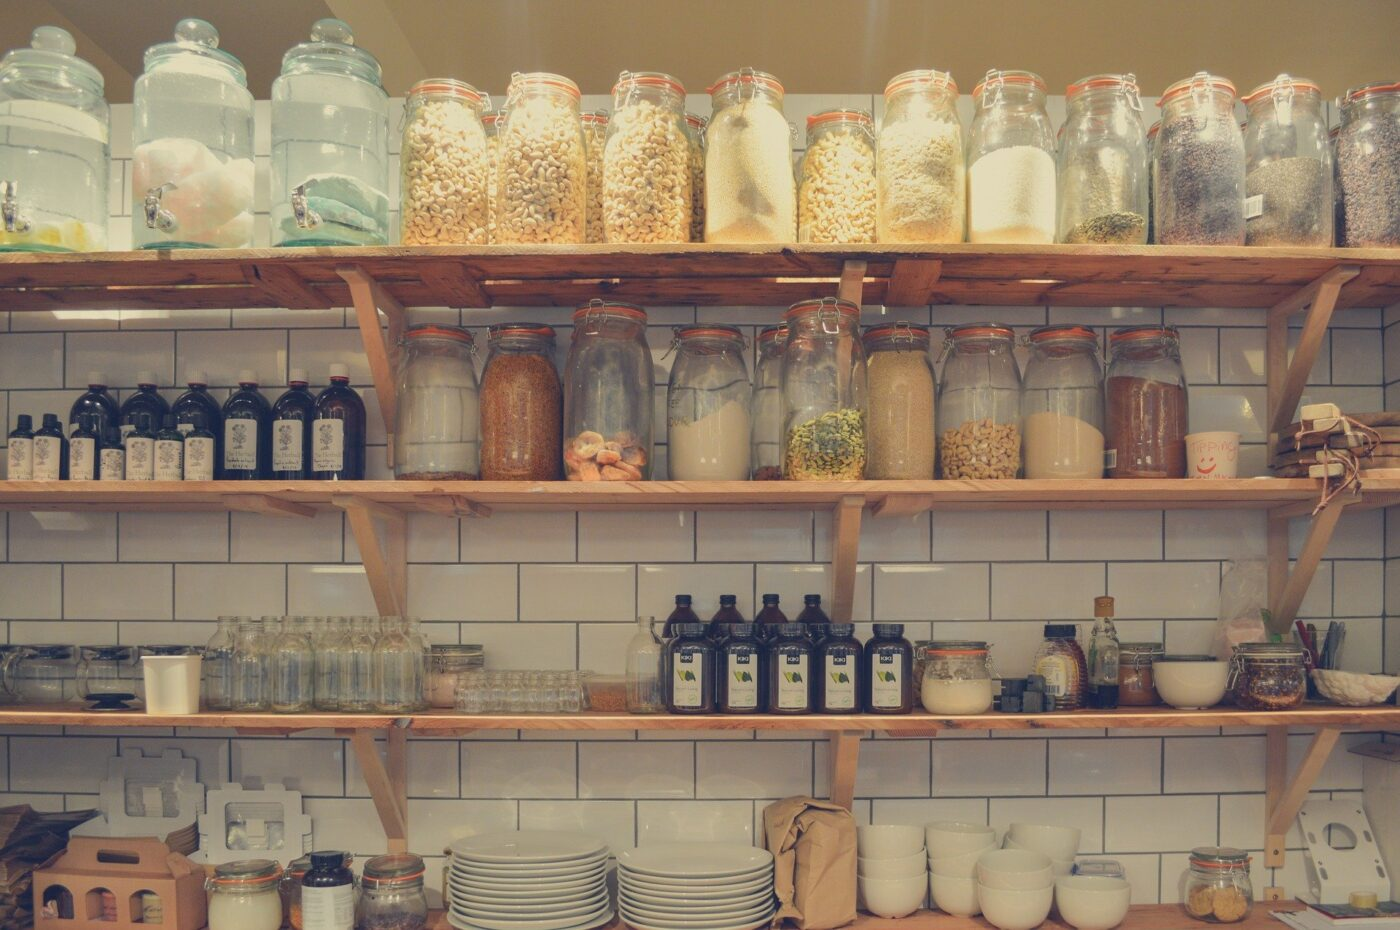 Canned goods on shelves in a kitchen